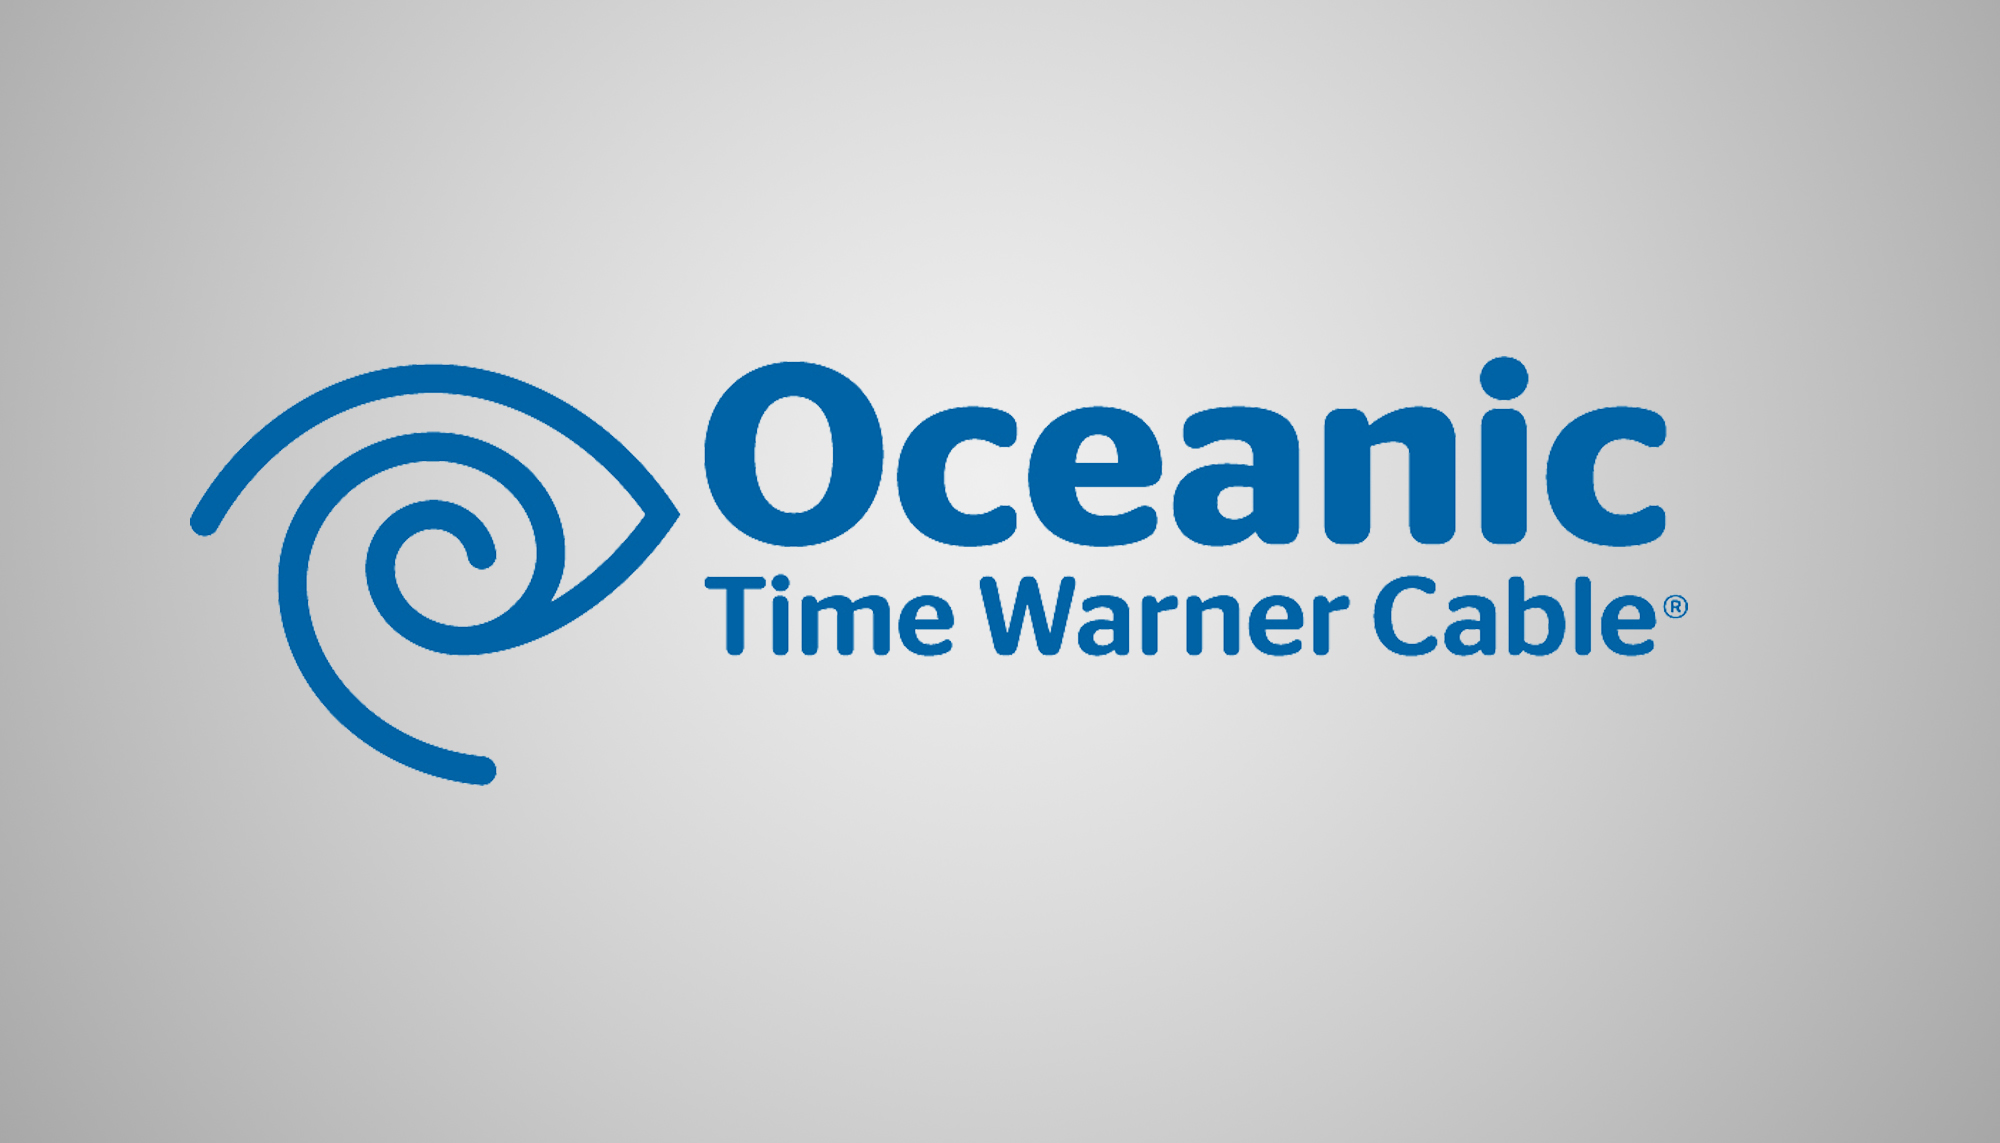 Oceanic Time Warner Cable Case Study by TH!NK Training